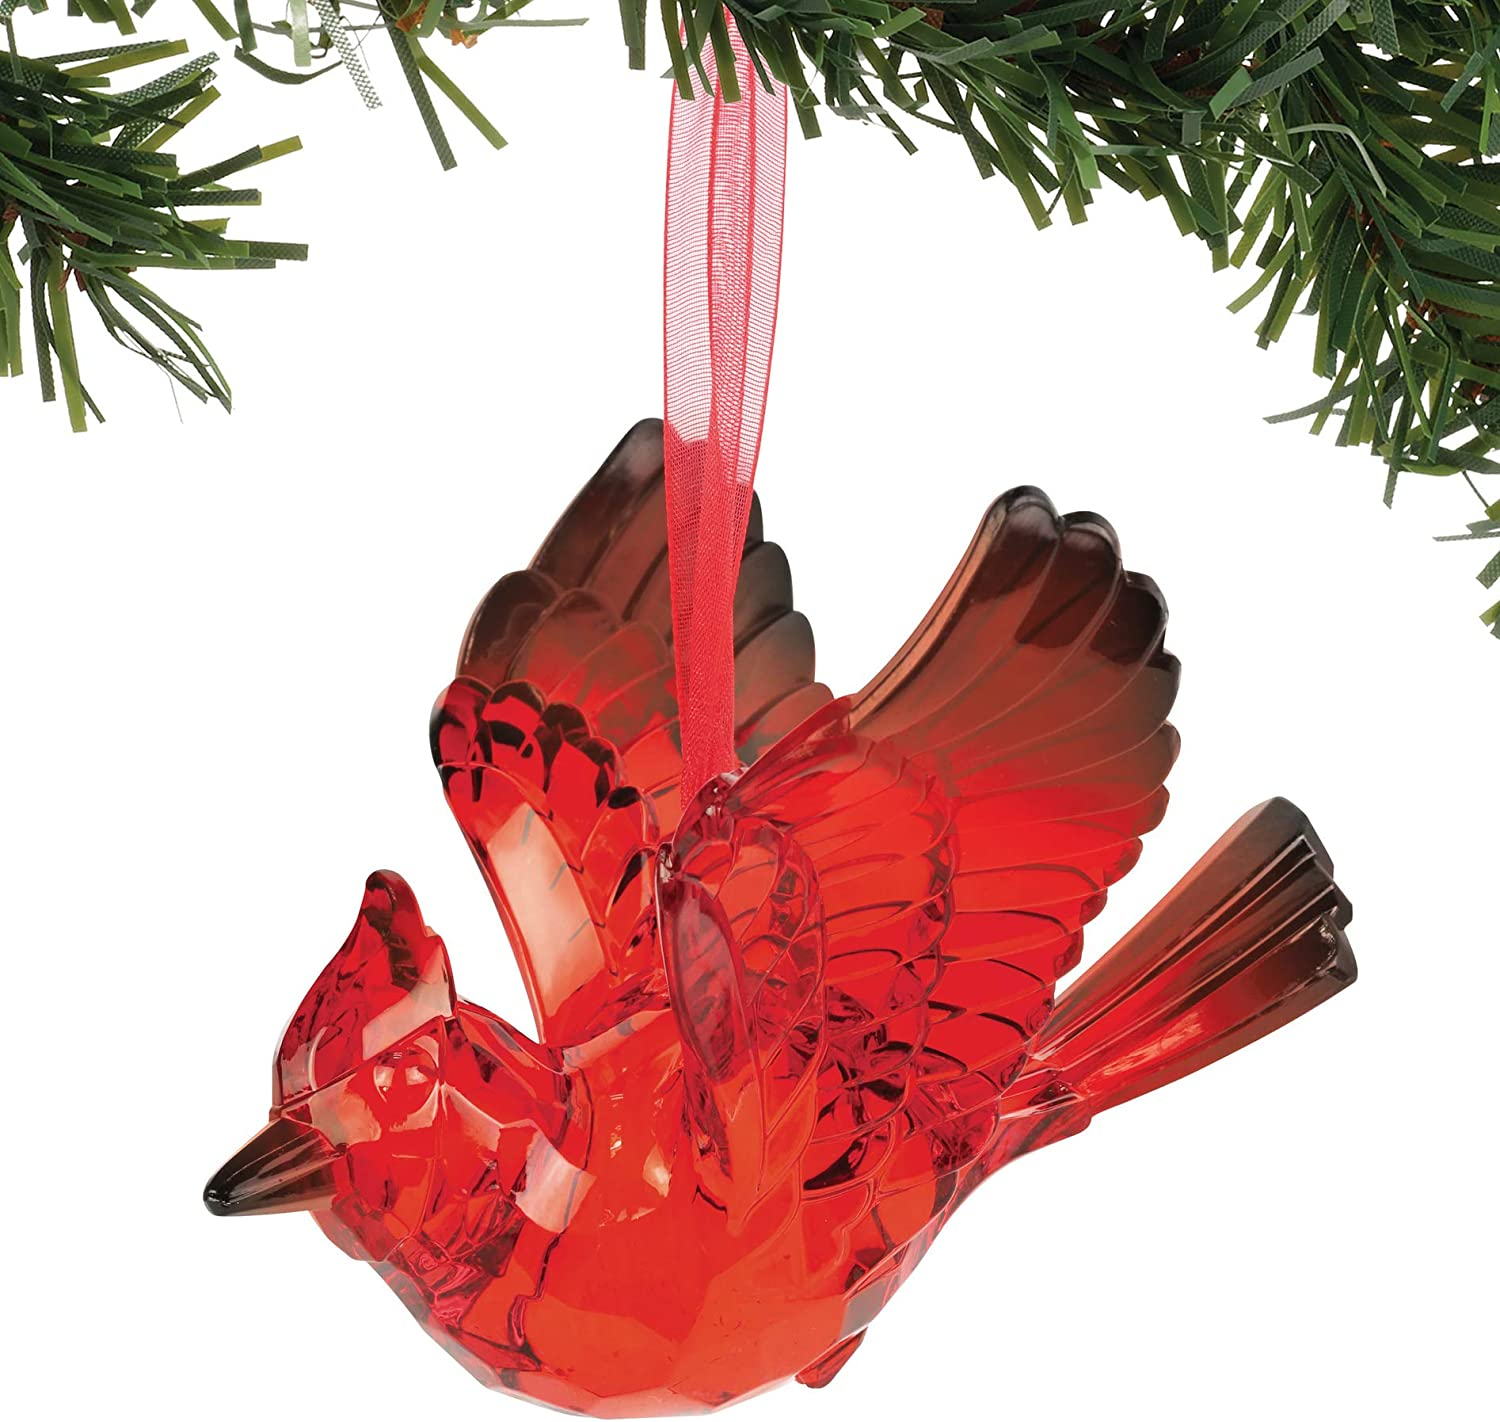 Department 56 Christmas Basics Cardinal Bird Hanging Ornament 3 125 Inch Red Home Kitchen